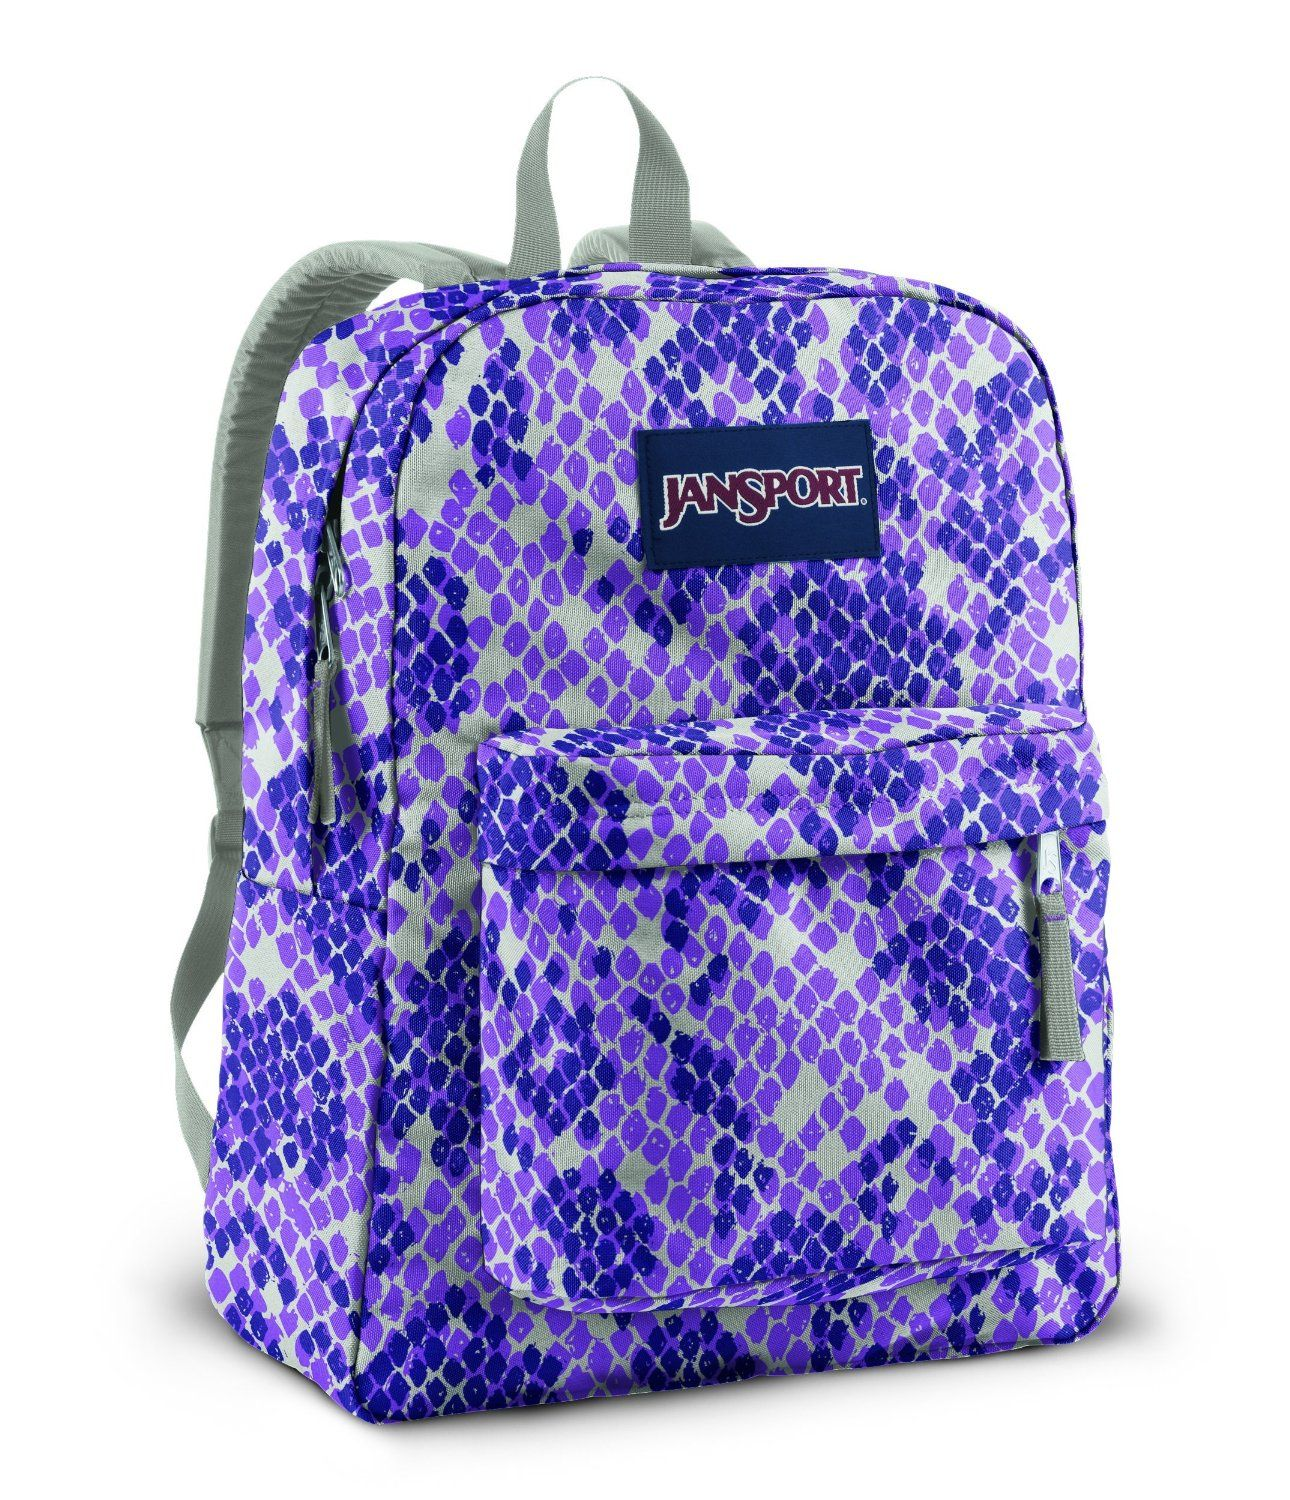 A12cbOAhgDL._SL1500_.jpg | Backpacks | Pinterest ...